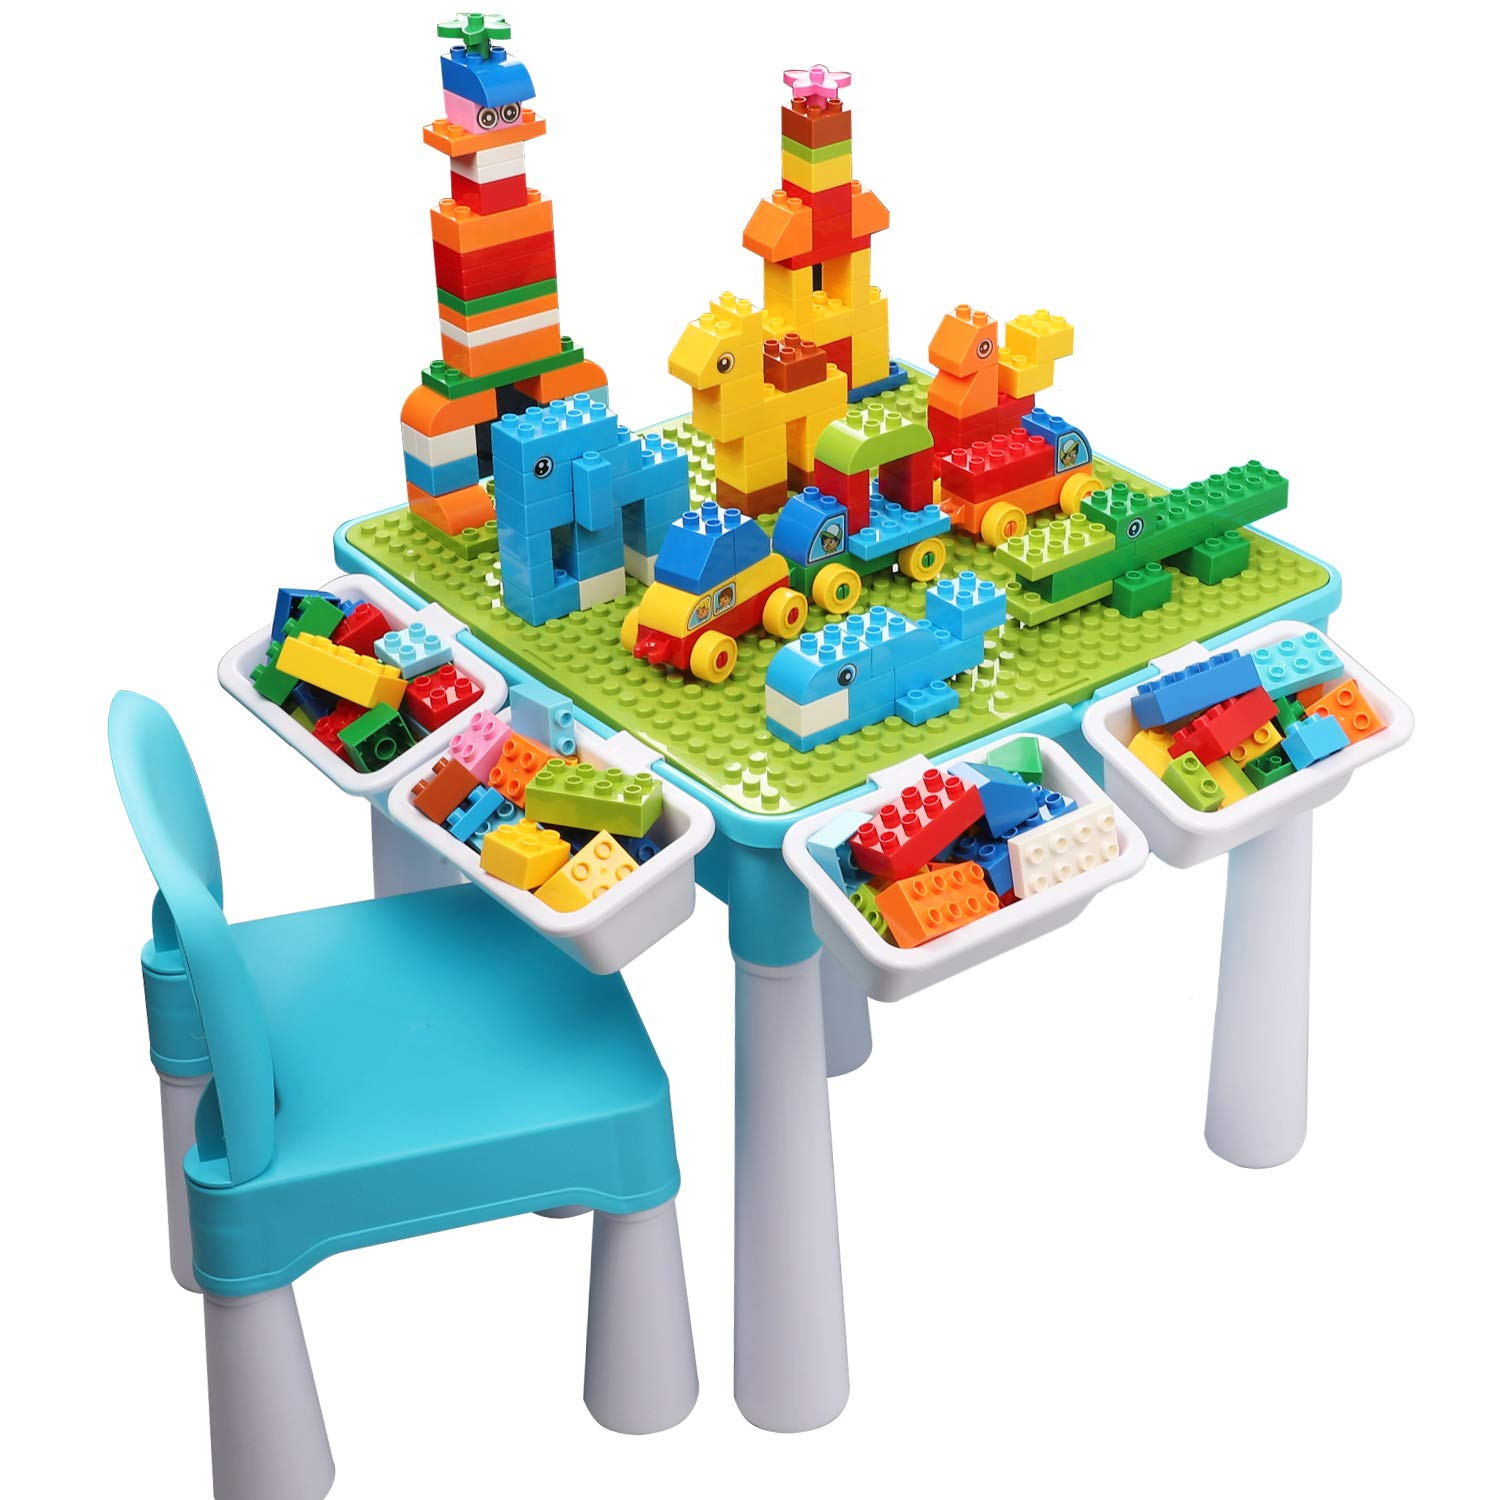 Kids 5-in-1 Multi Activity Table Set - 128 Pieces Large Building Blocks Compatible Bricks Toy, Play Table Includes 1 Chair and Building Block Table with Storage, Green Baseplate Board/Blue Color by burgkidz